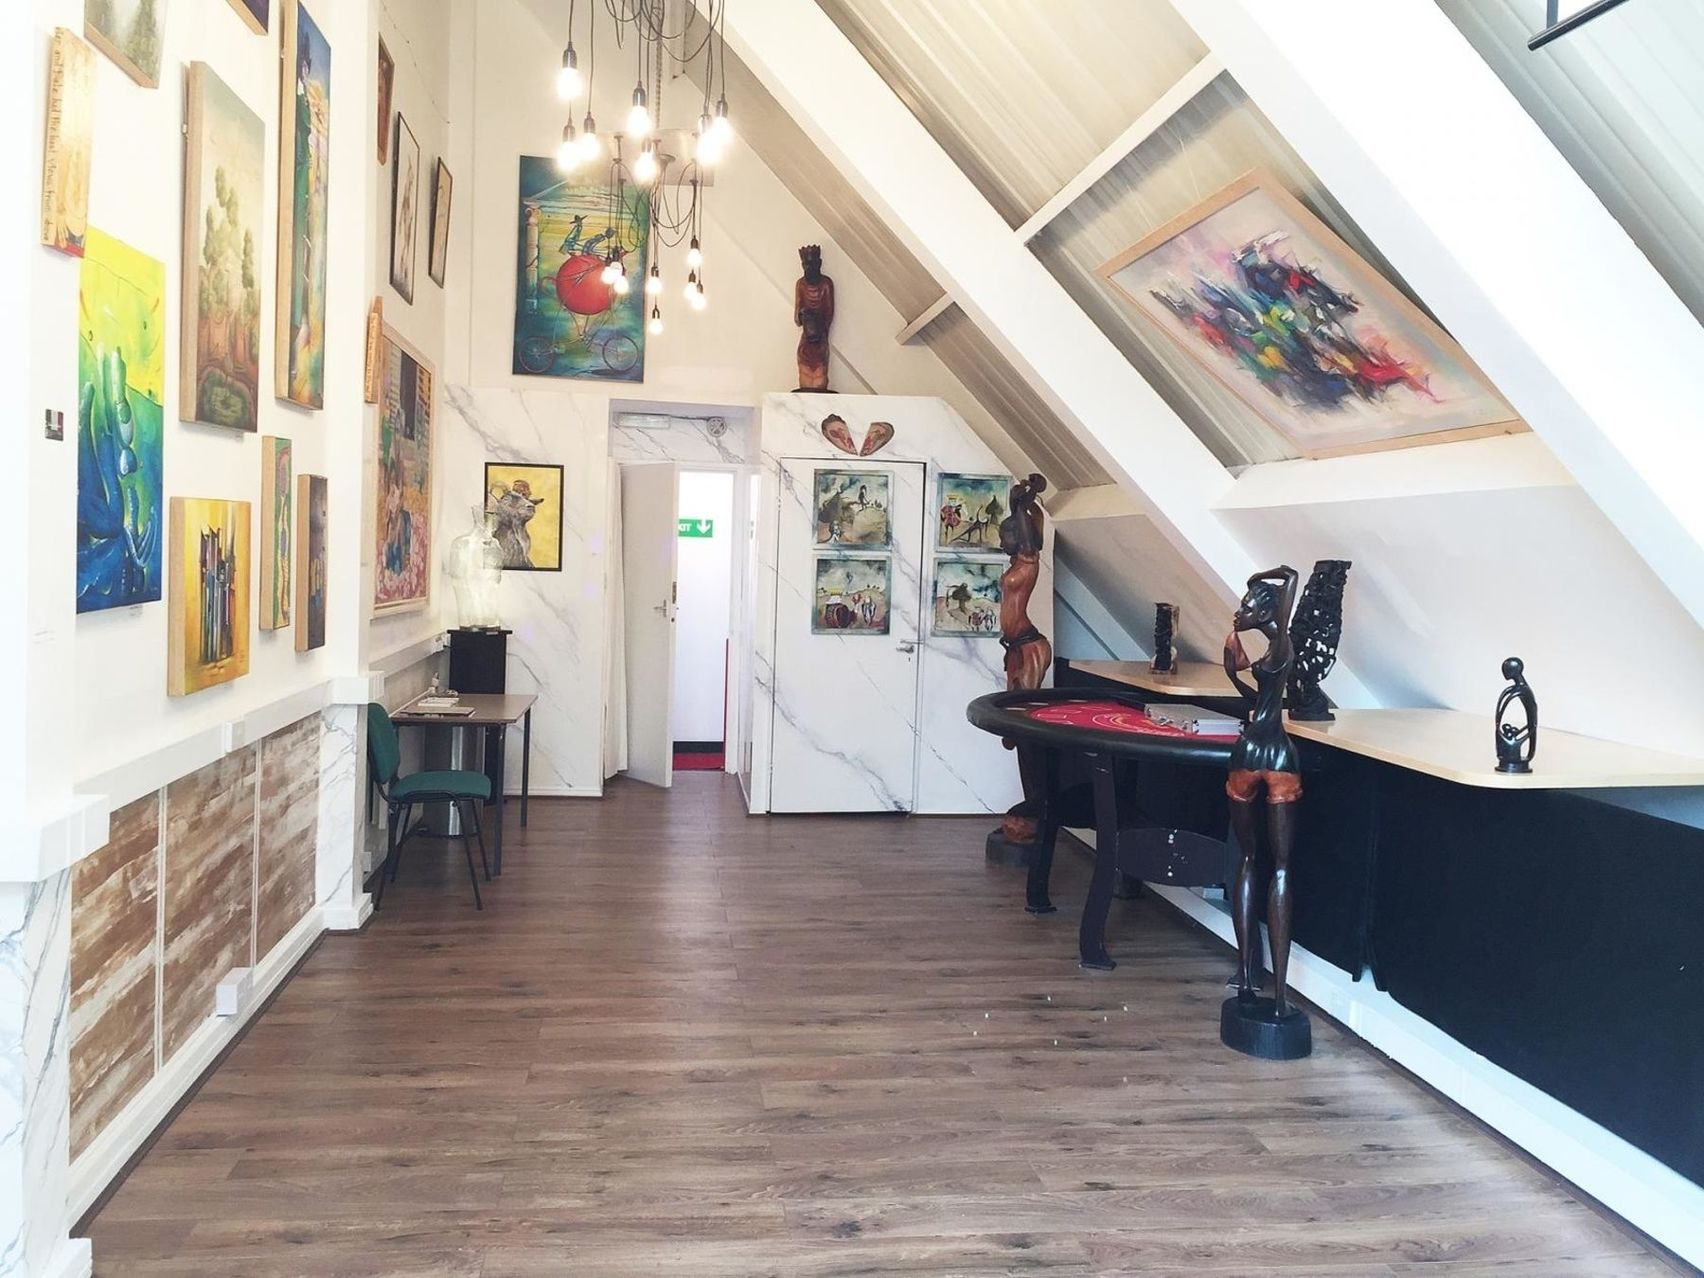 A small art gallery with a slanted roof.